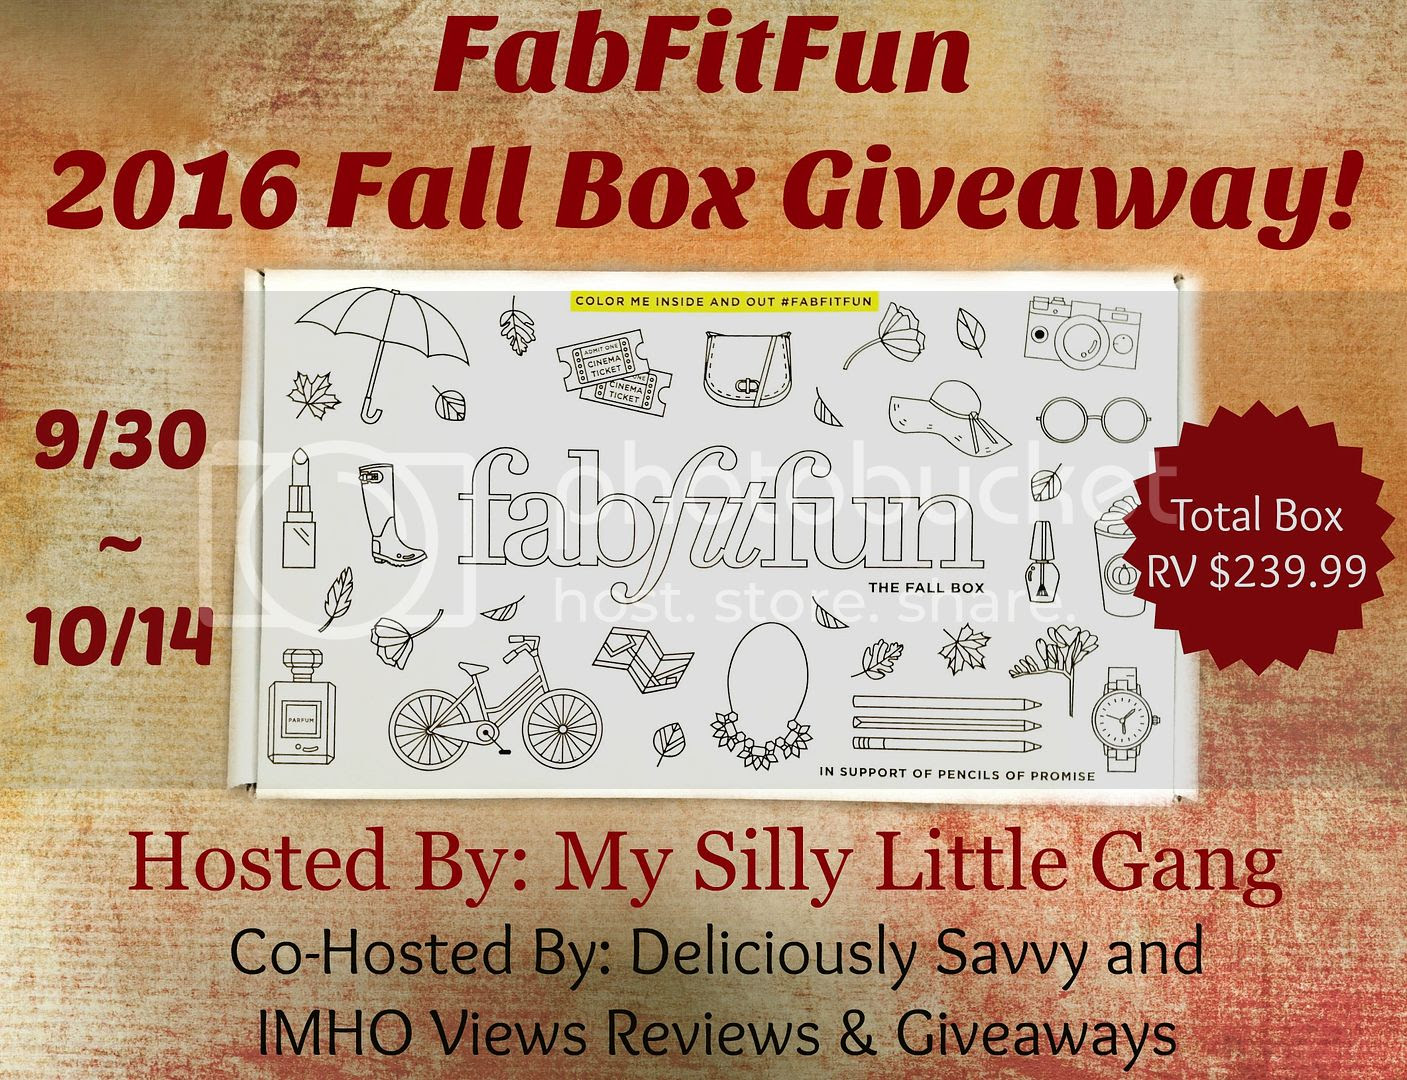 FabFitFun fall box giveaway